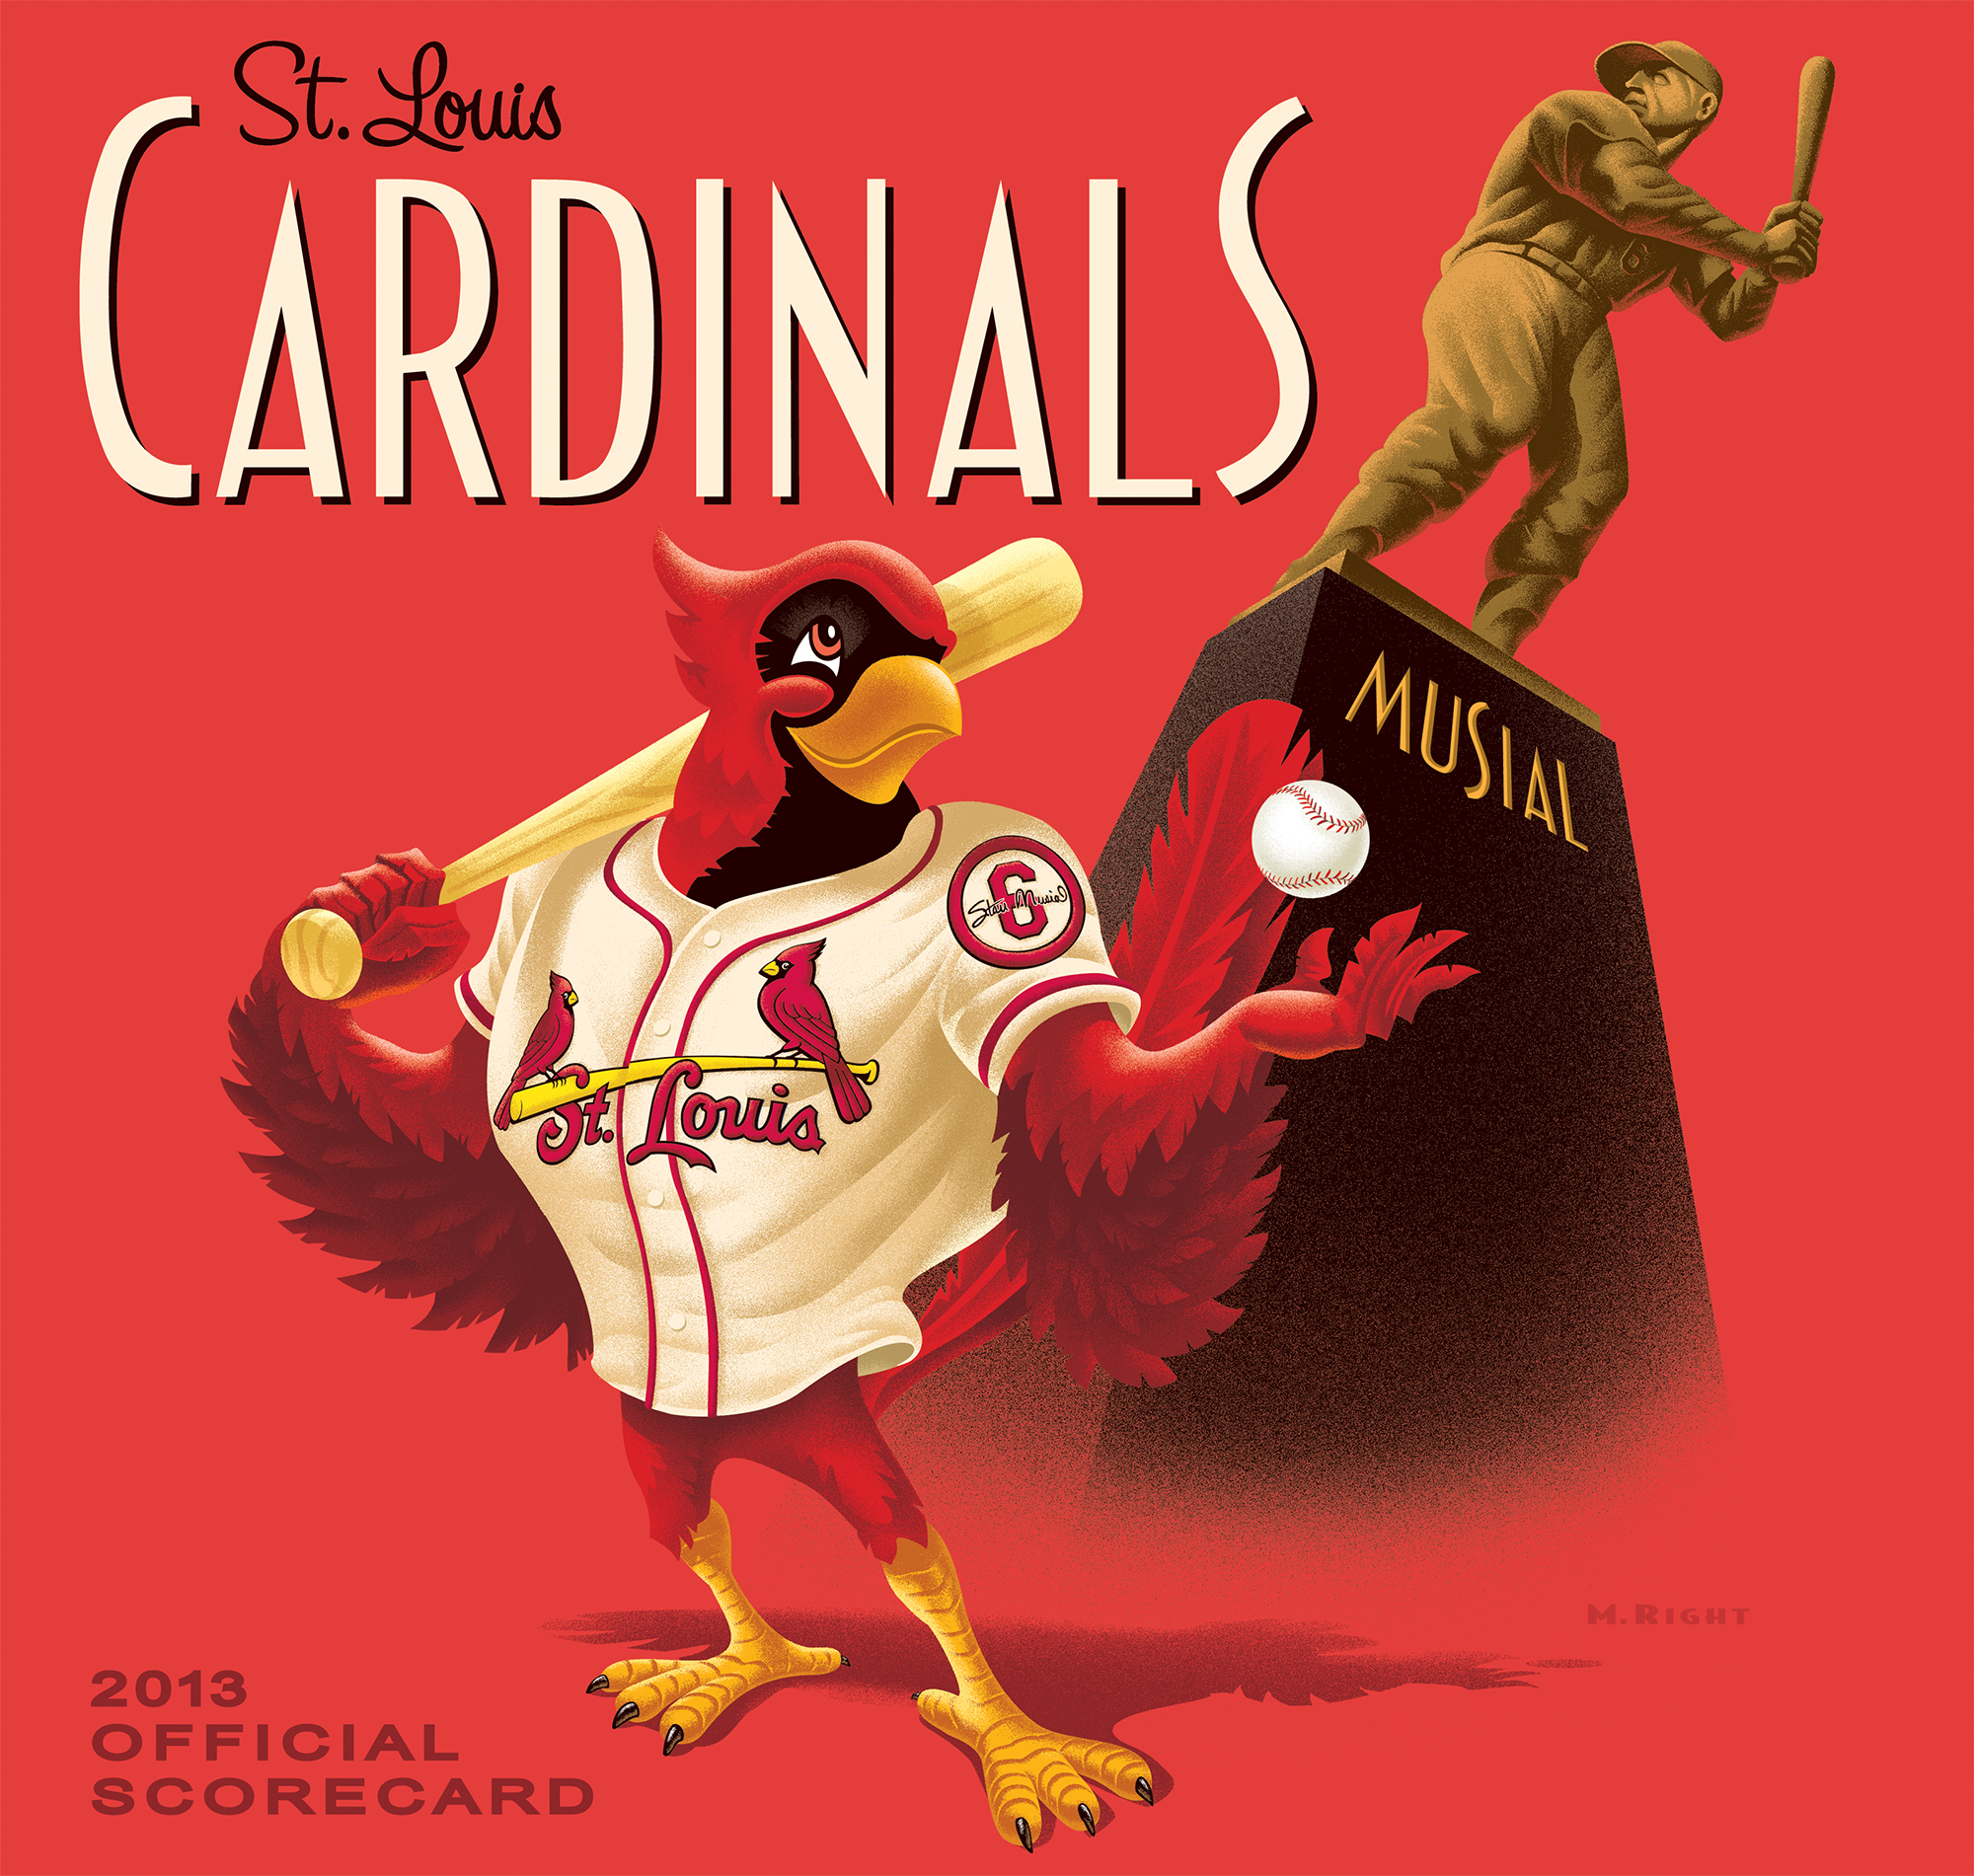 2013 Cardinals Official Scorecard